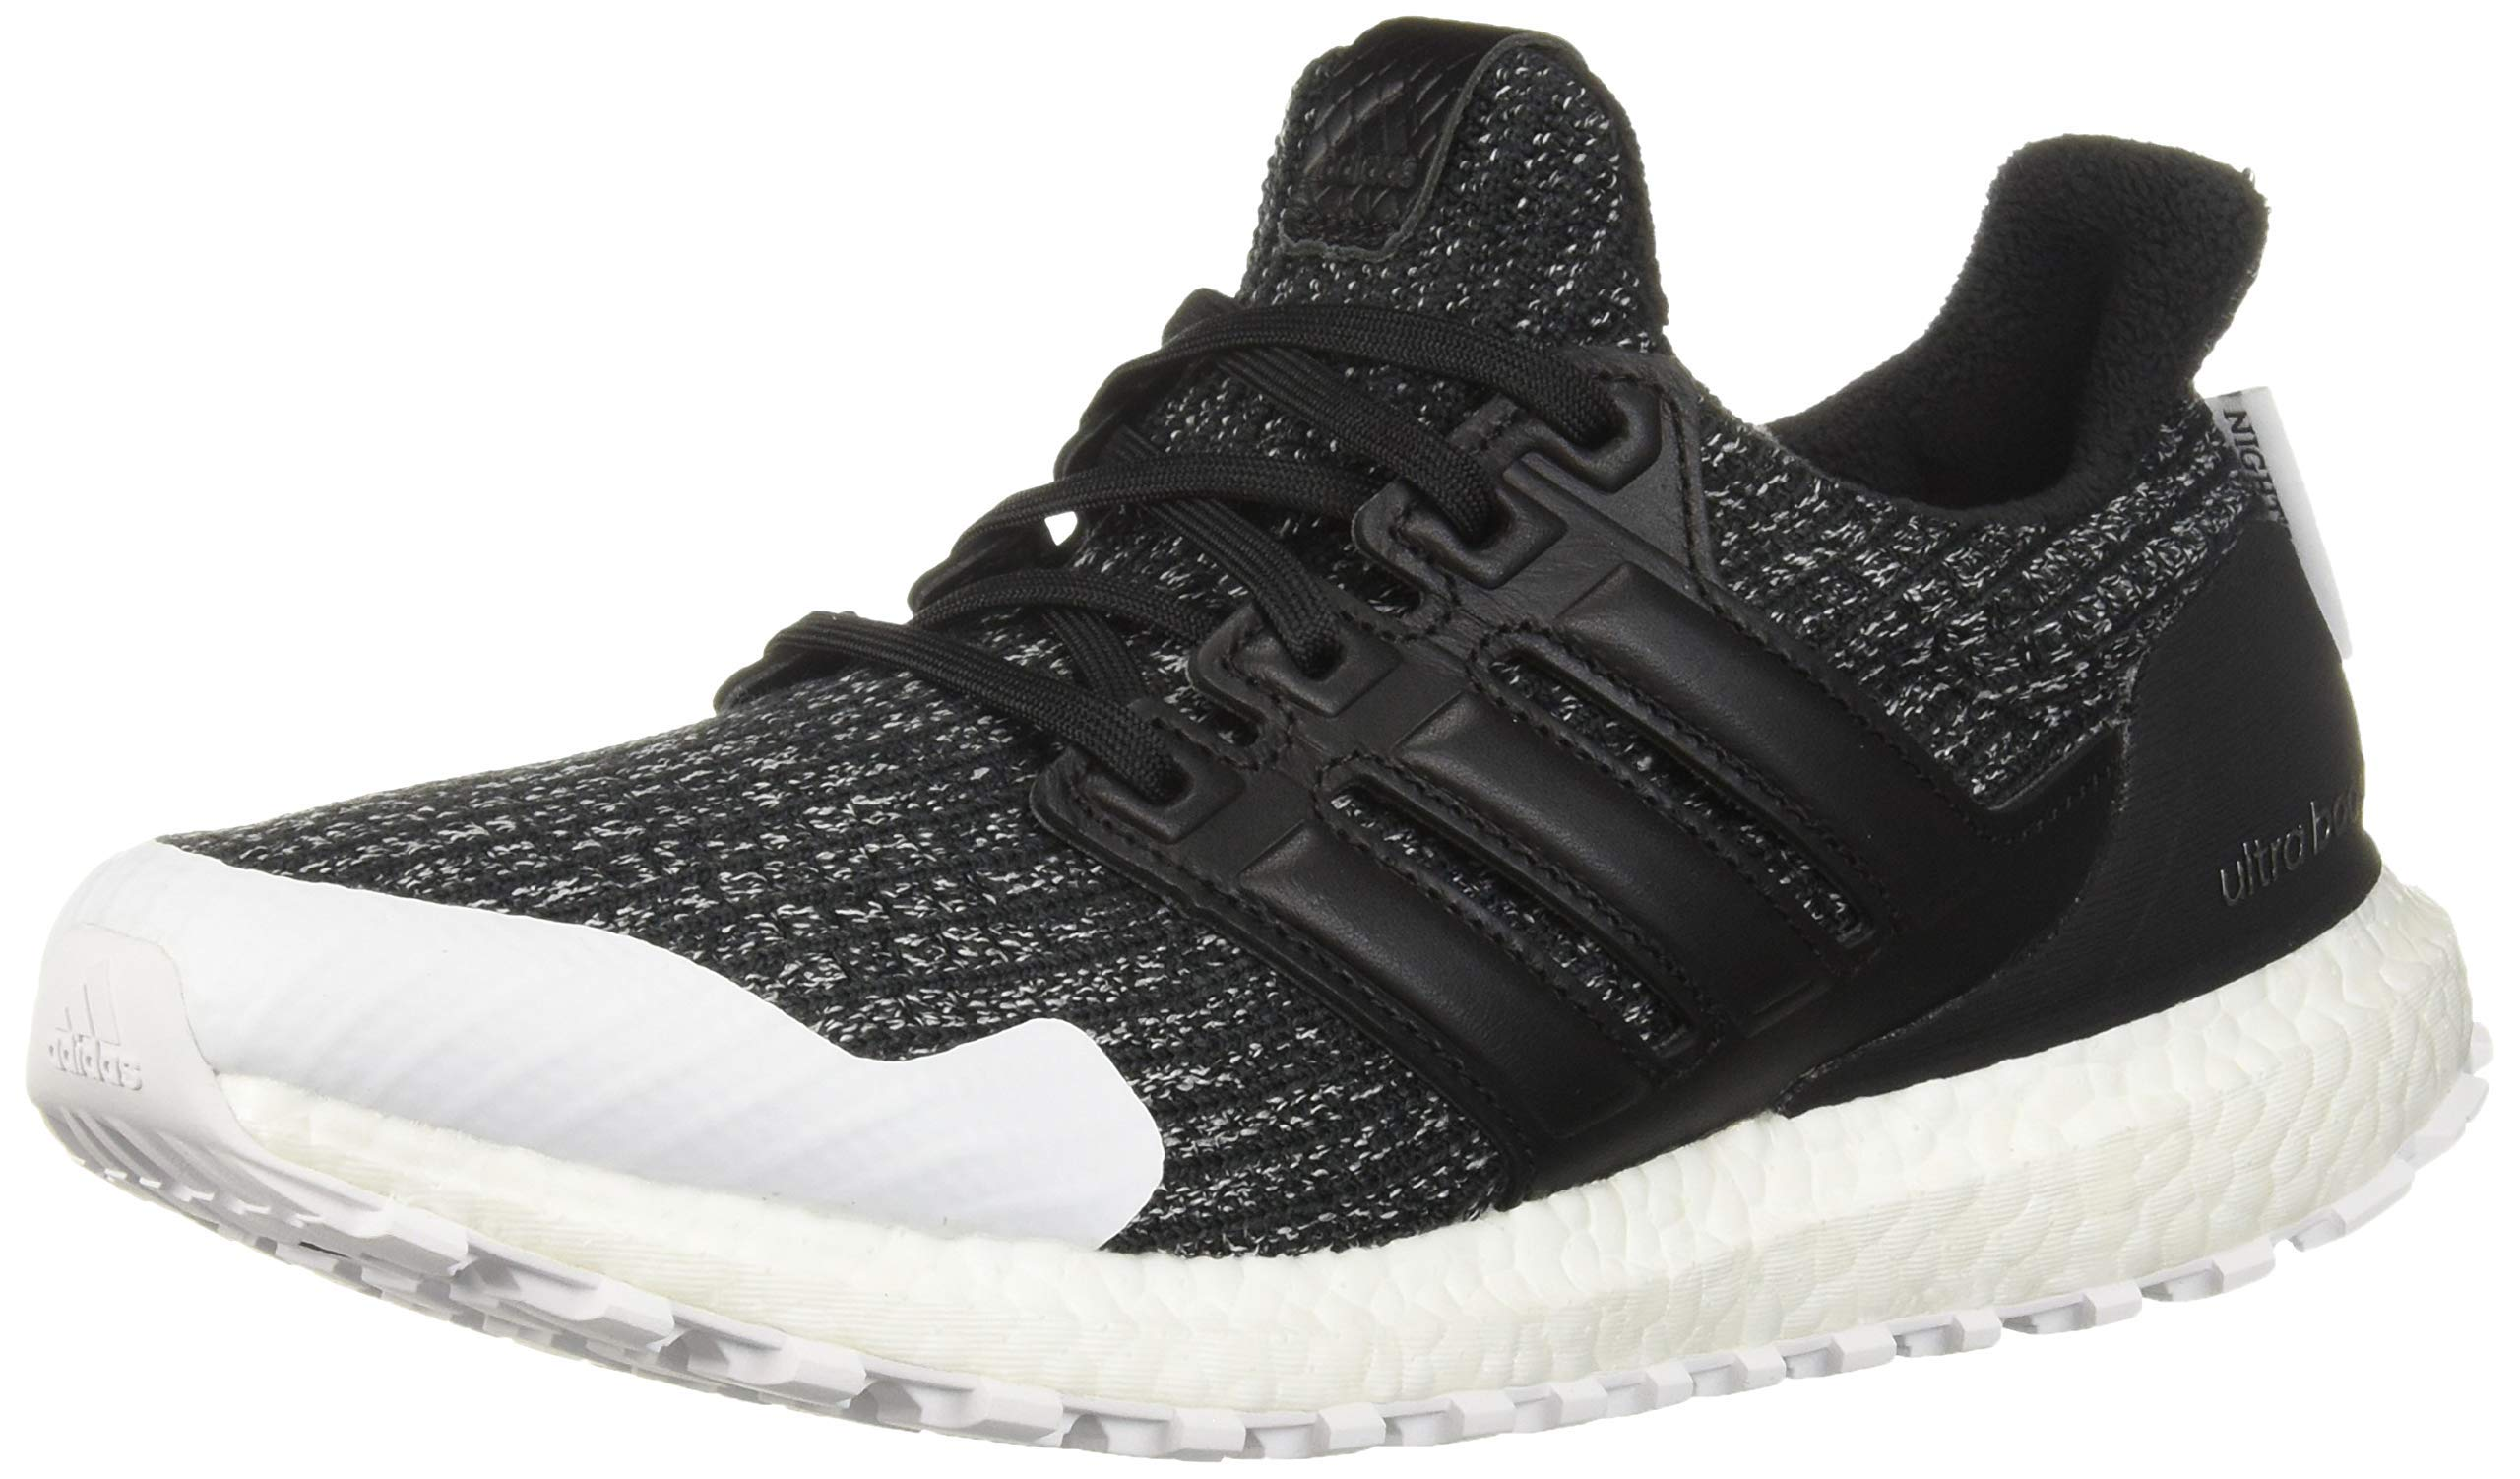 adidas x Game of Thrones Men's Ultraboost Running Shoes, Night's Watch, 8 M US by adidas (Image #1)